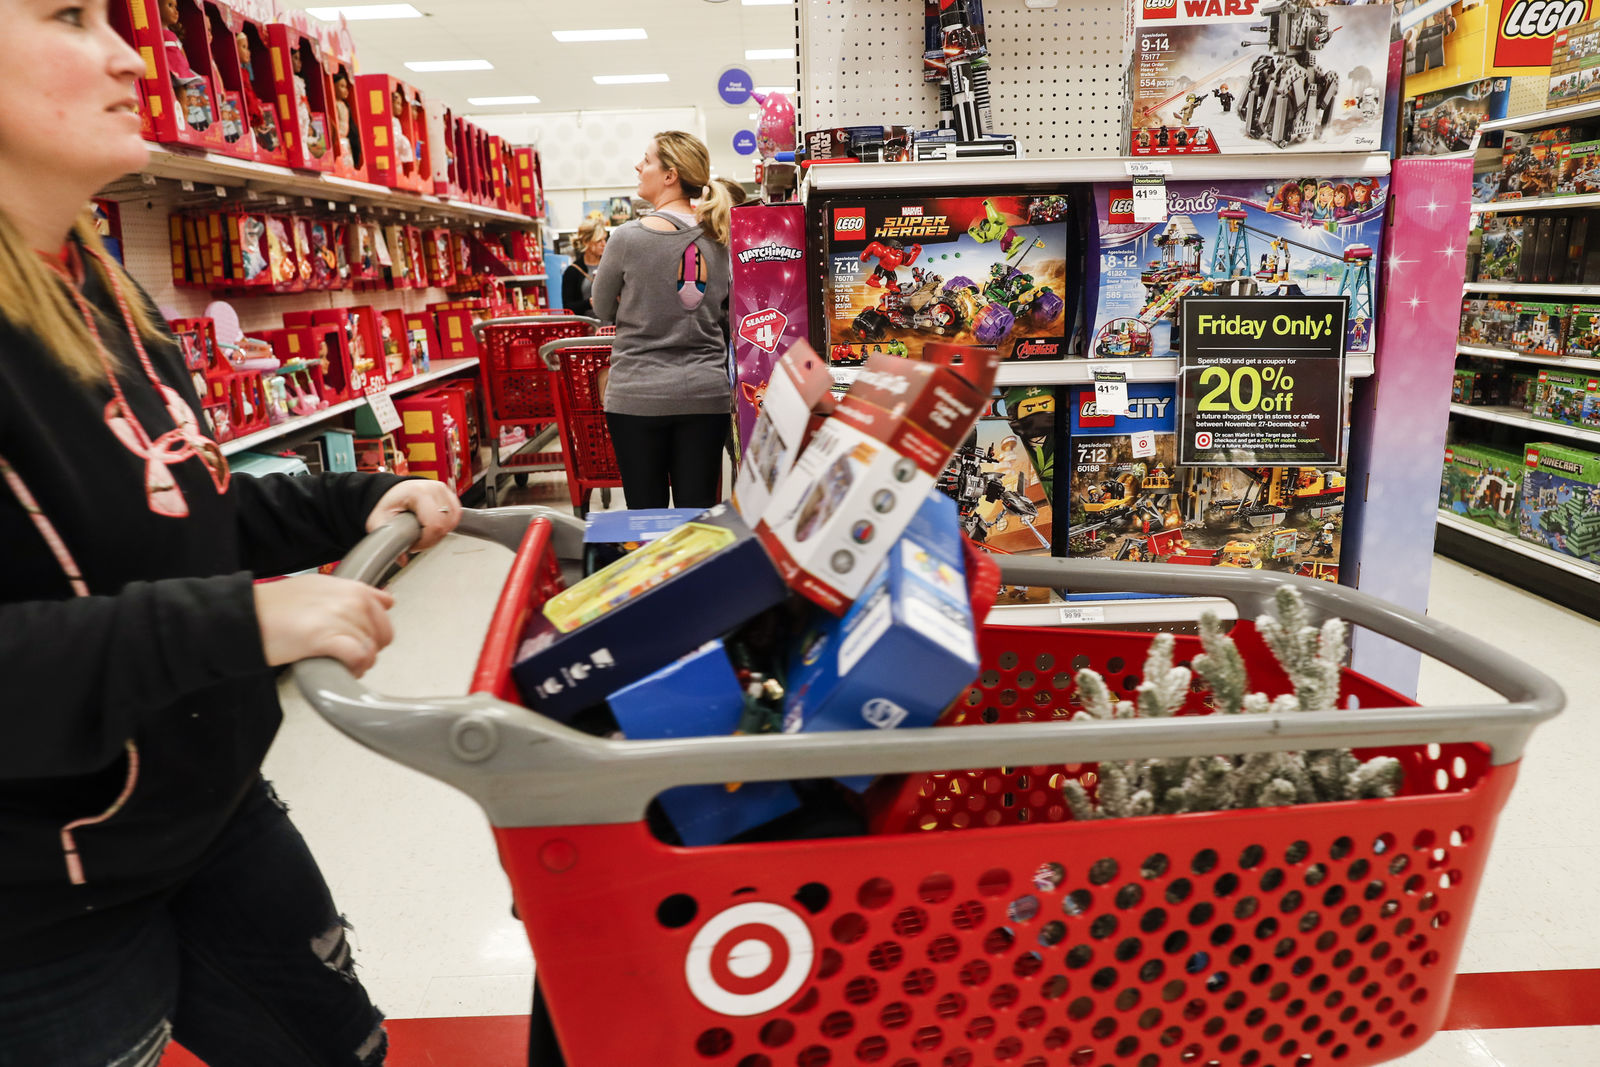 { }In this Nov. 23, 2018, file photo shoppers browse the aisles during a Black Friday sale at a Target store in Newport, Ky. Target on Thursday, Jan. 10, 2019, posted strong online growth in November and December.(AP Photo/John Minchillo, File)